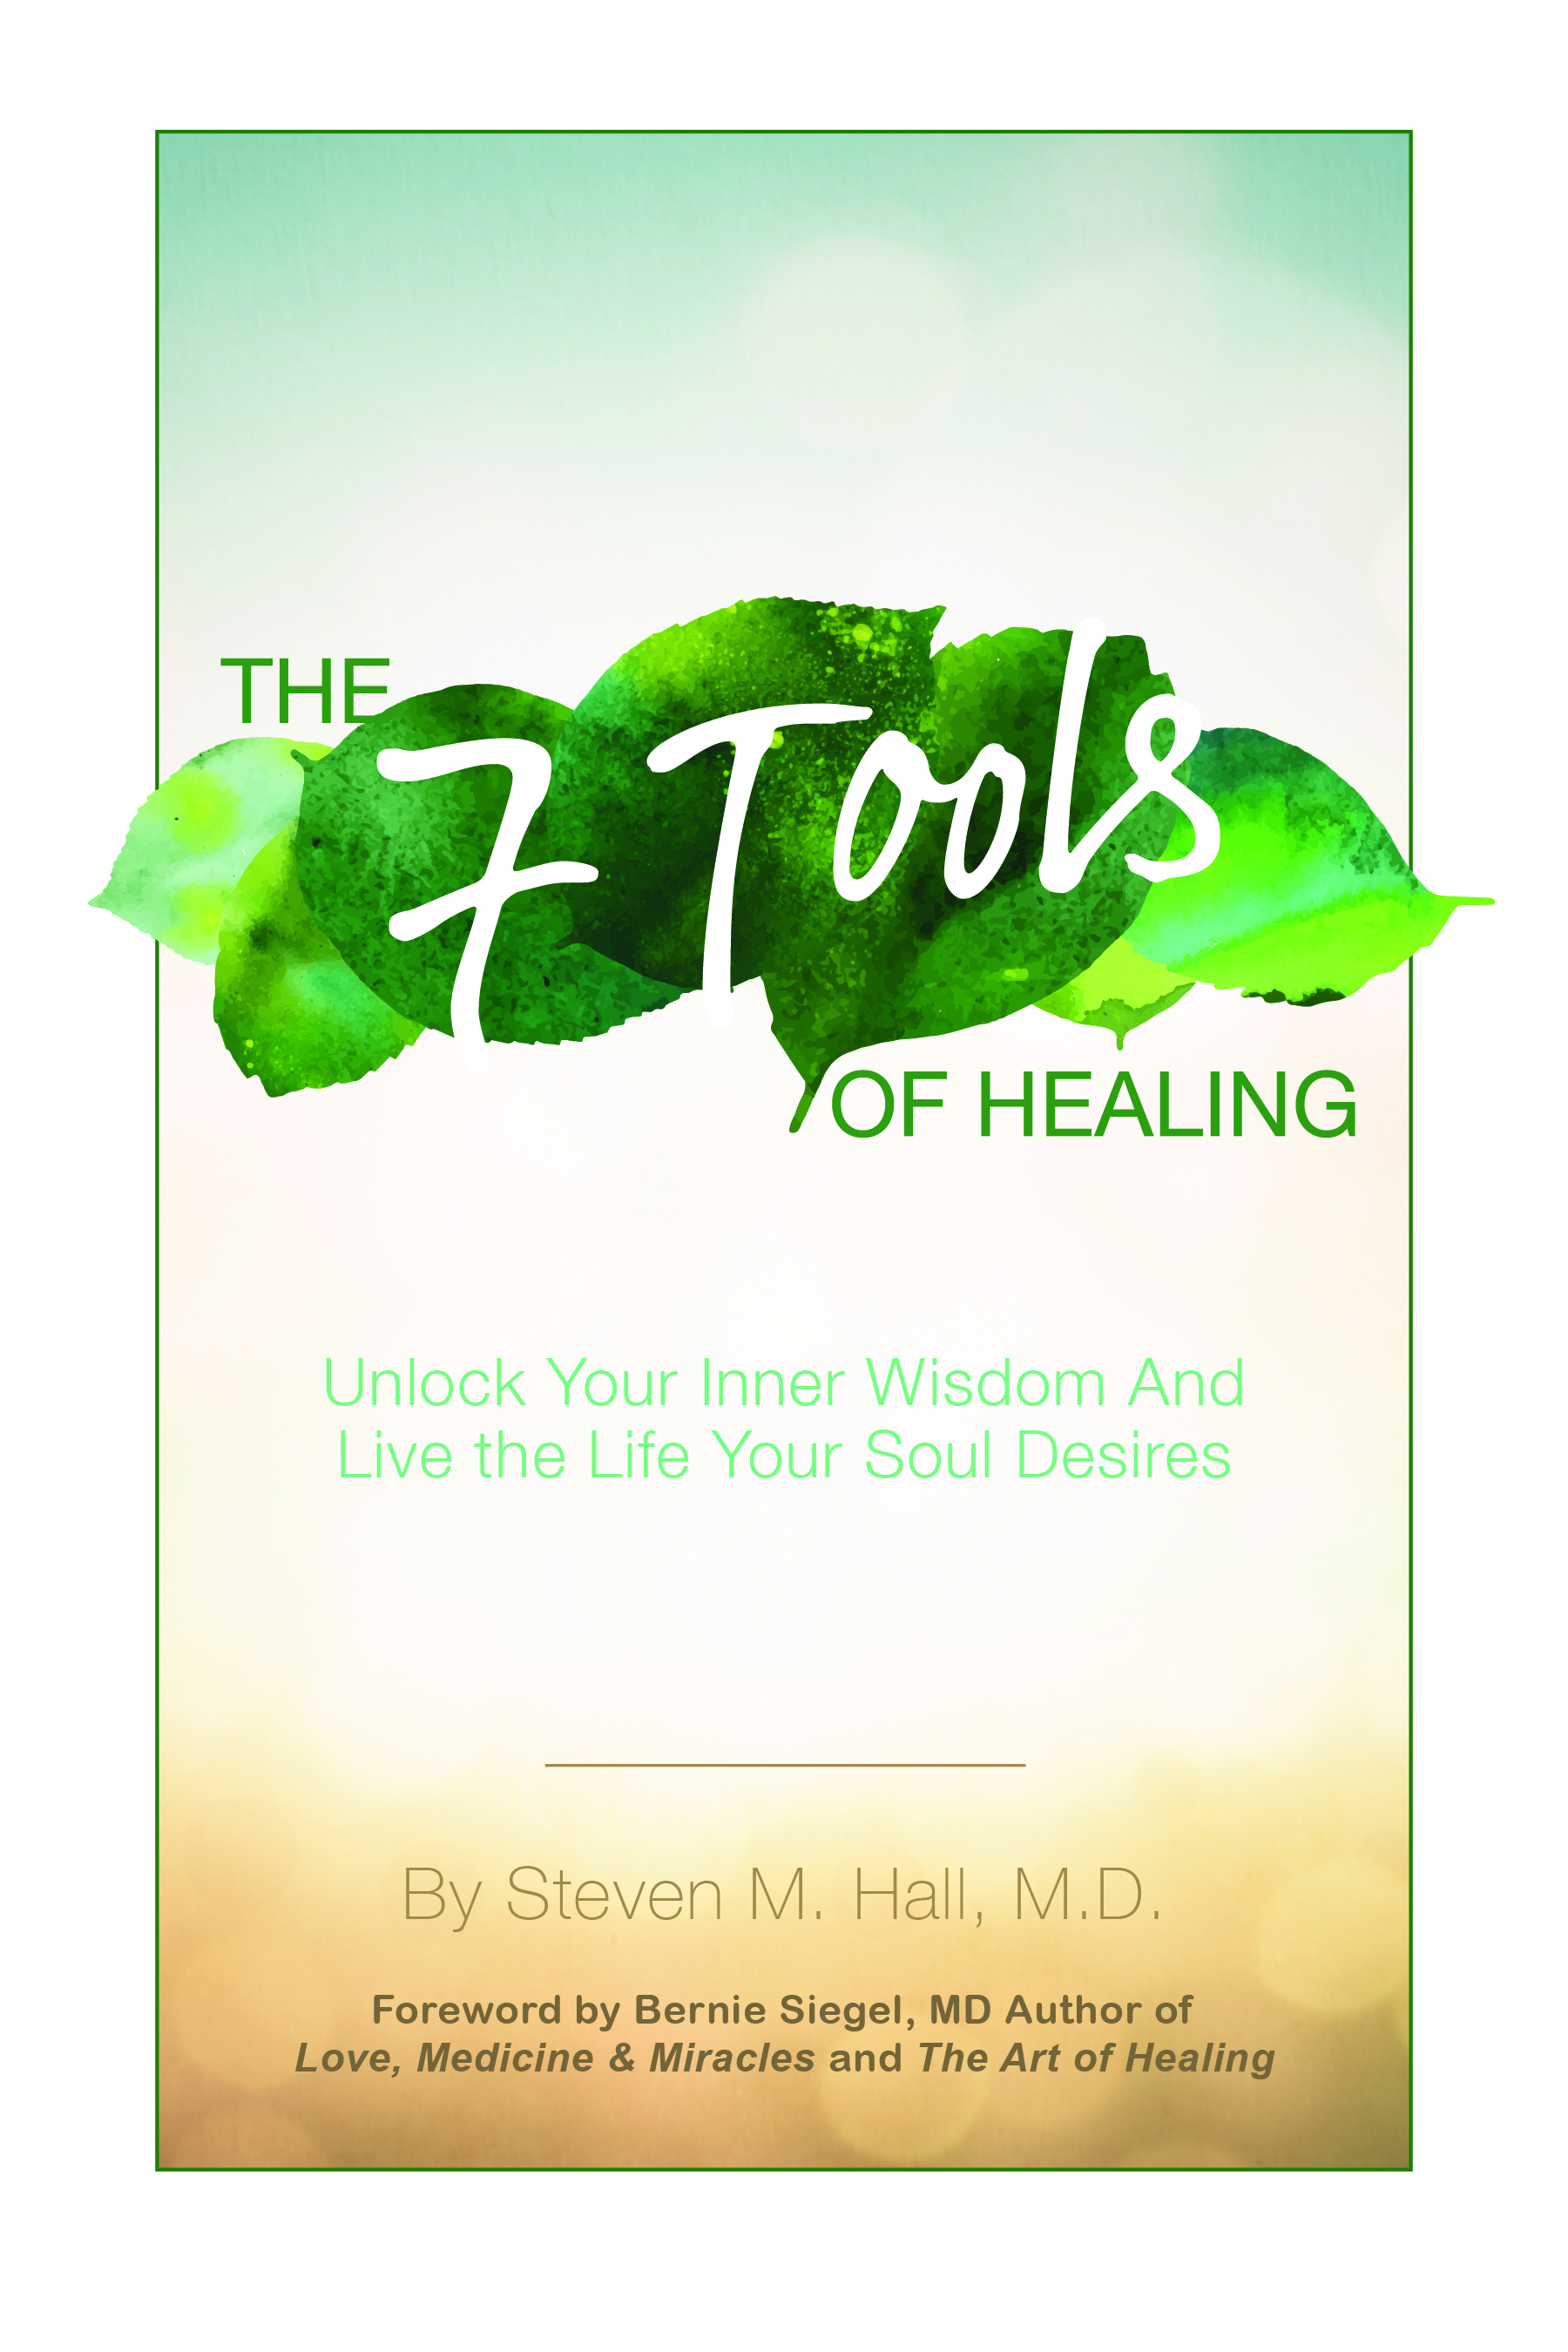 Seven Tools Book Cover Final version (1) (1)